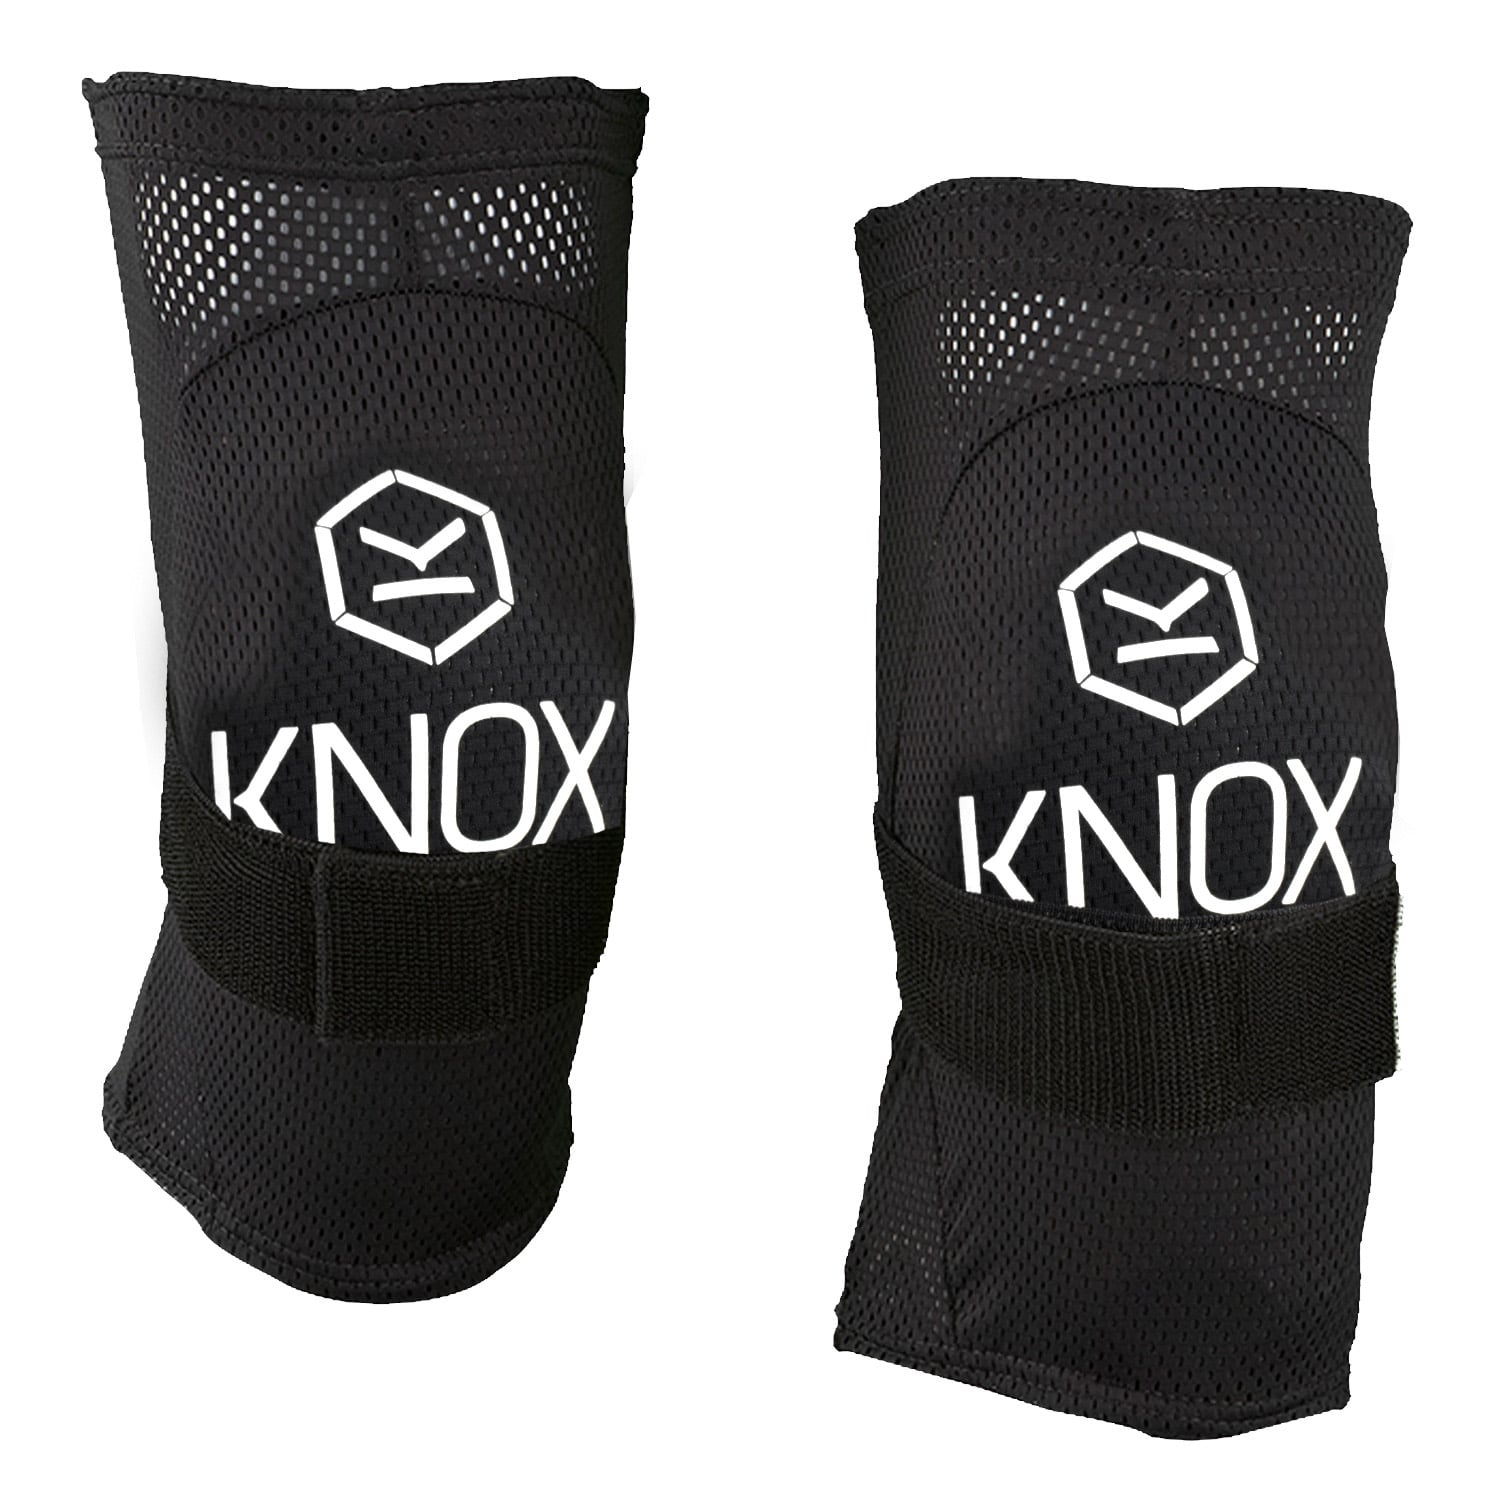 NEW Knox CE Approved Advance X Part 106 Back Protector